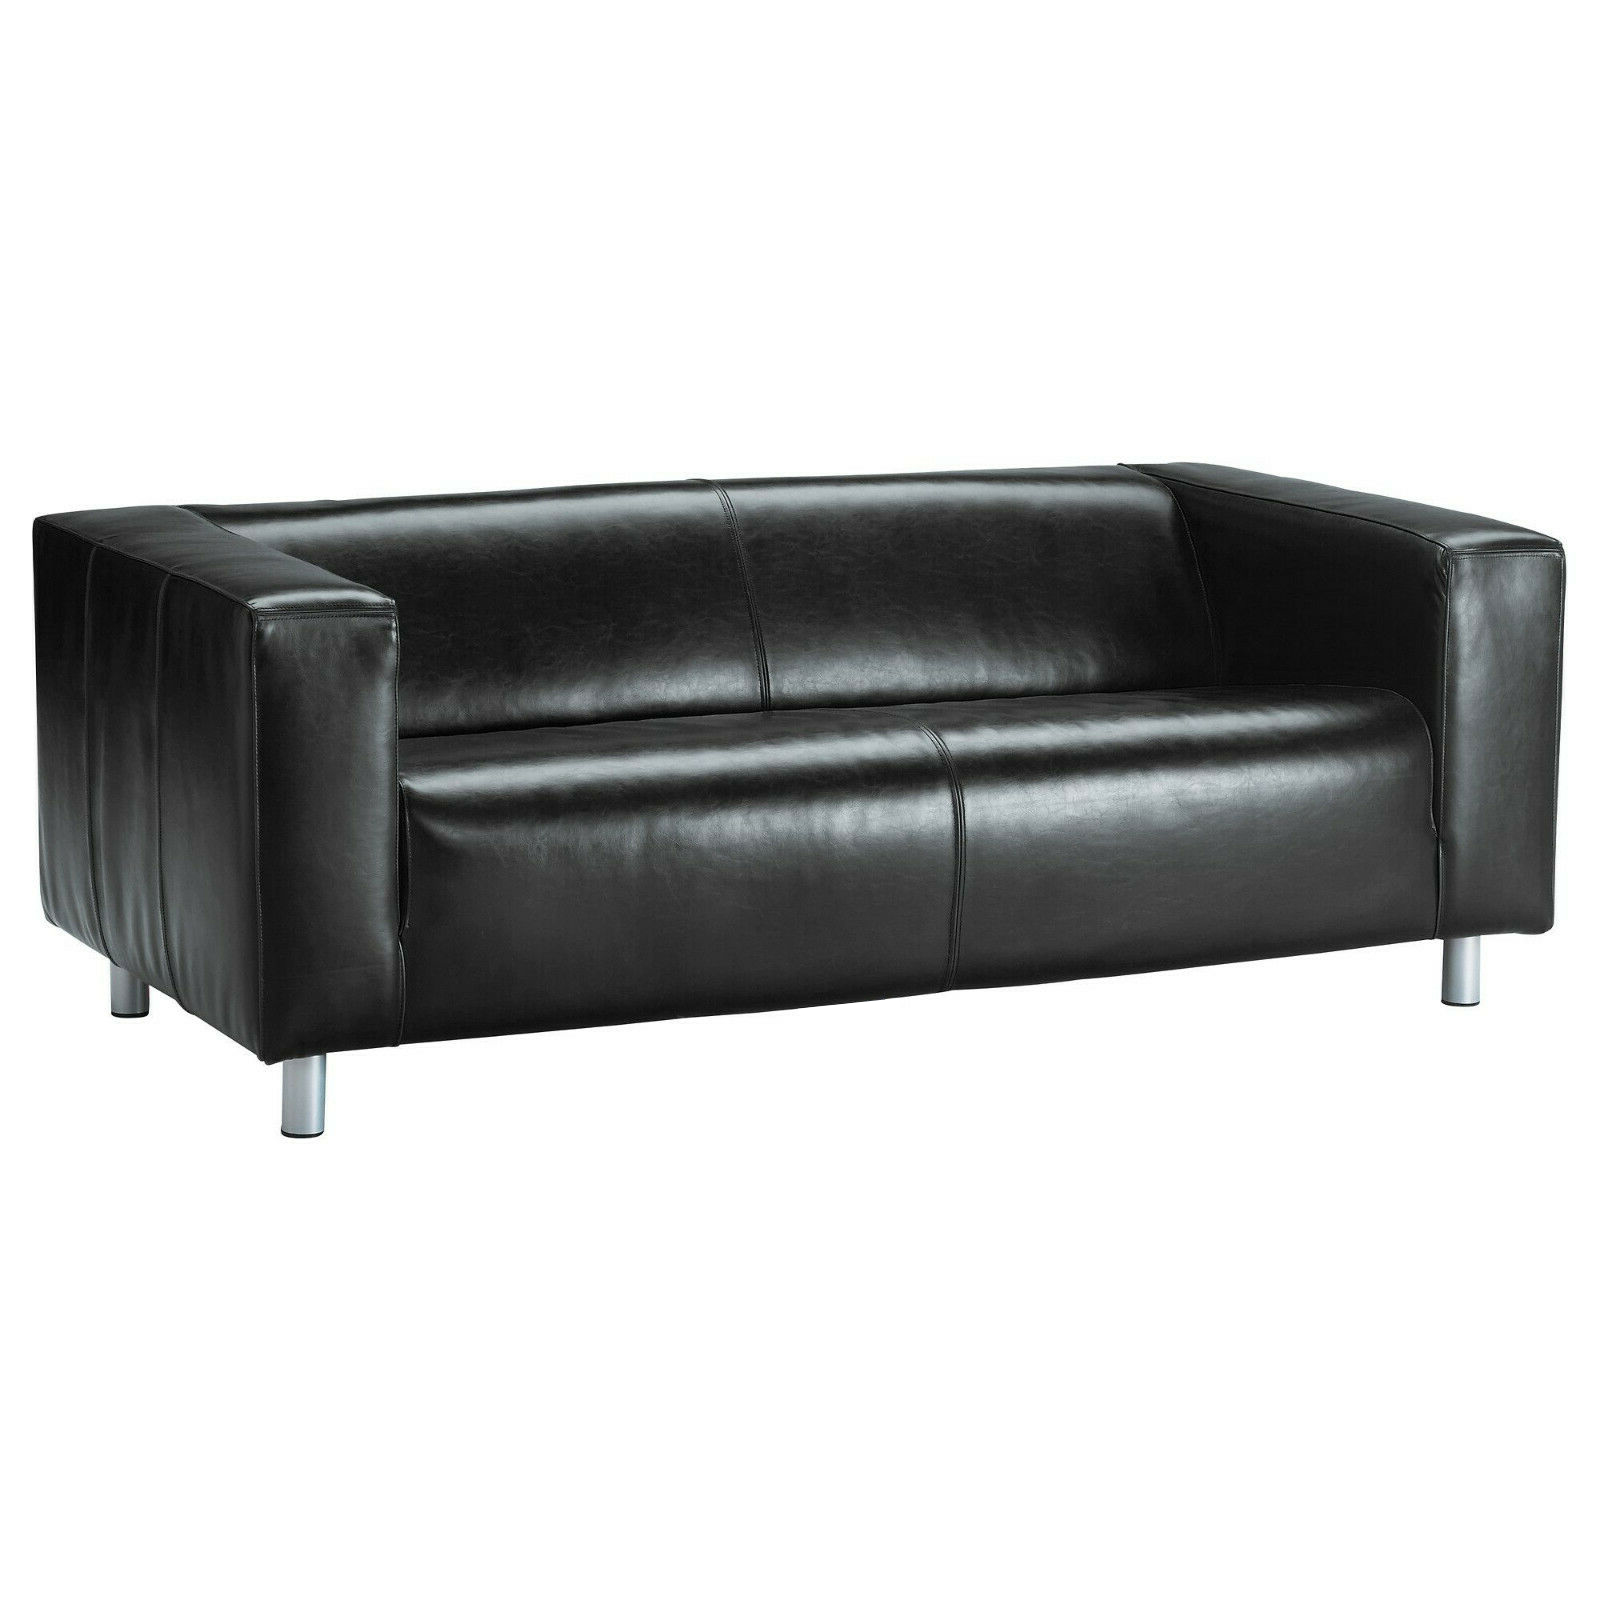 Ikea_klippan_leather_sofa_black